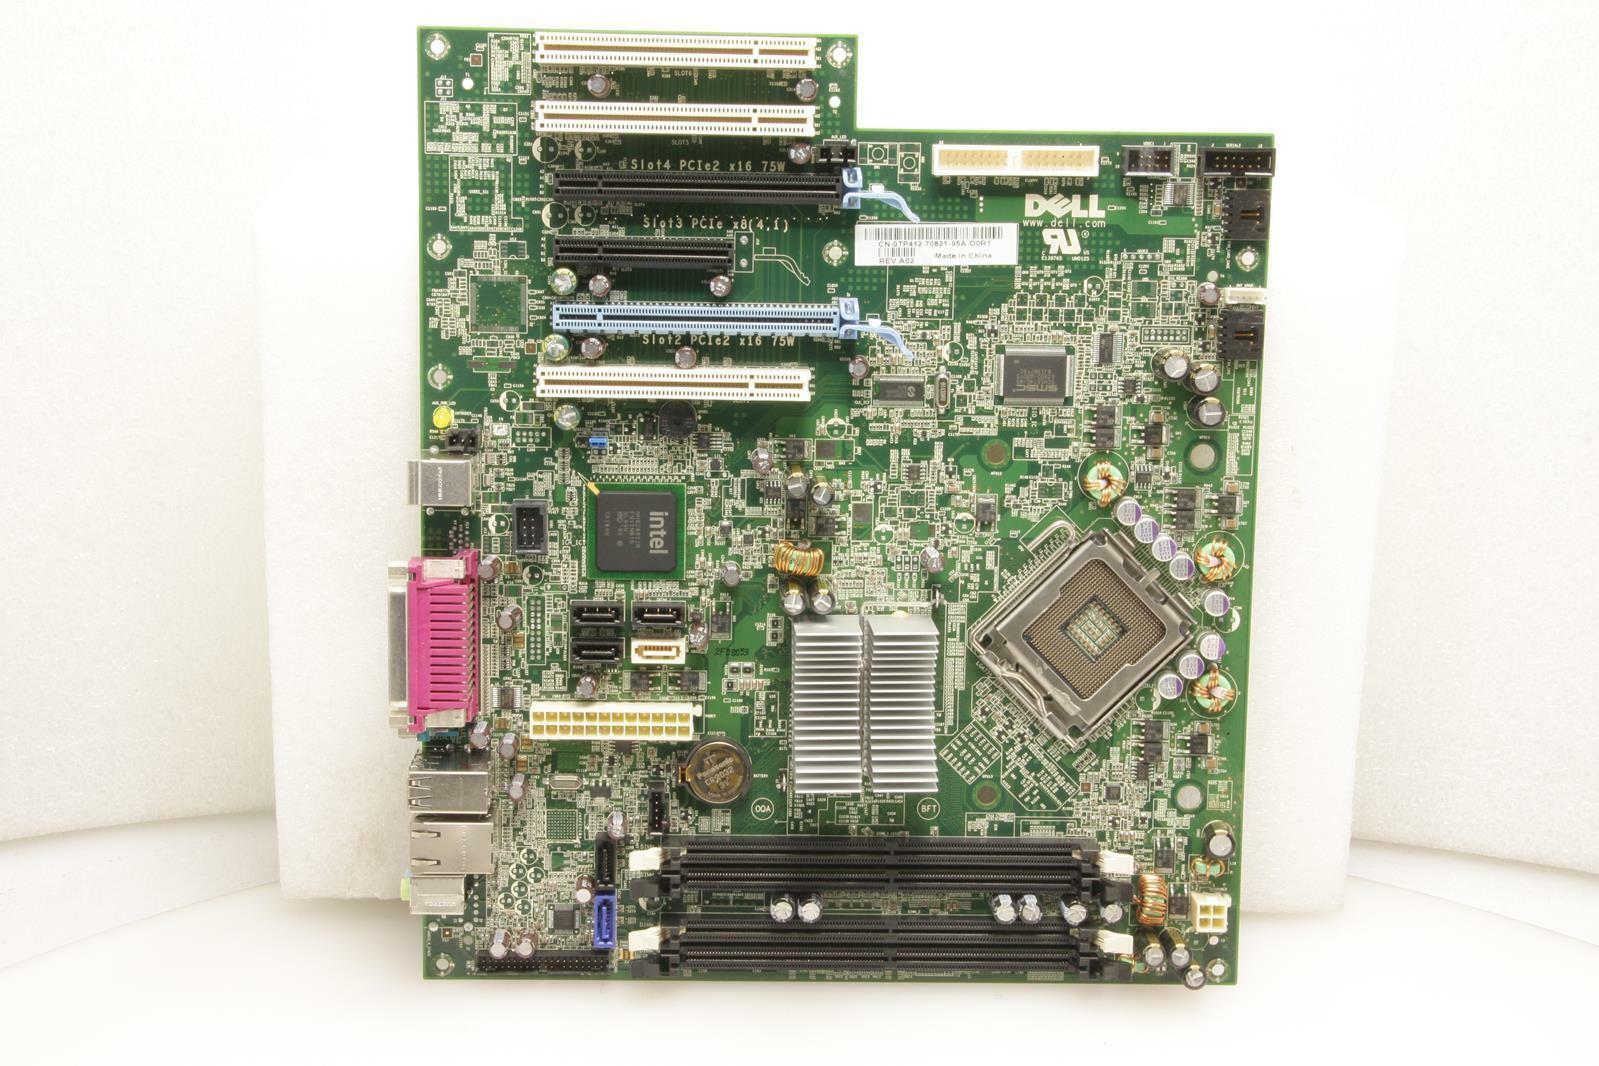 DELL 0TP412 TP412 MOTHERBOARD FOR DELL PRECISION T3400 WORKSTATION USED